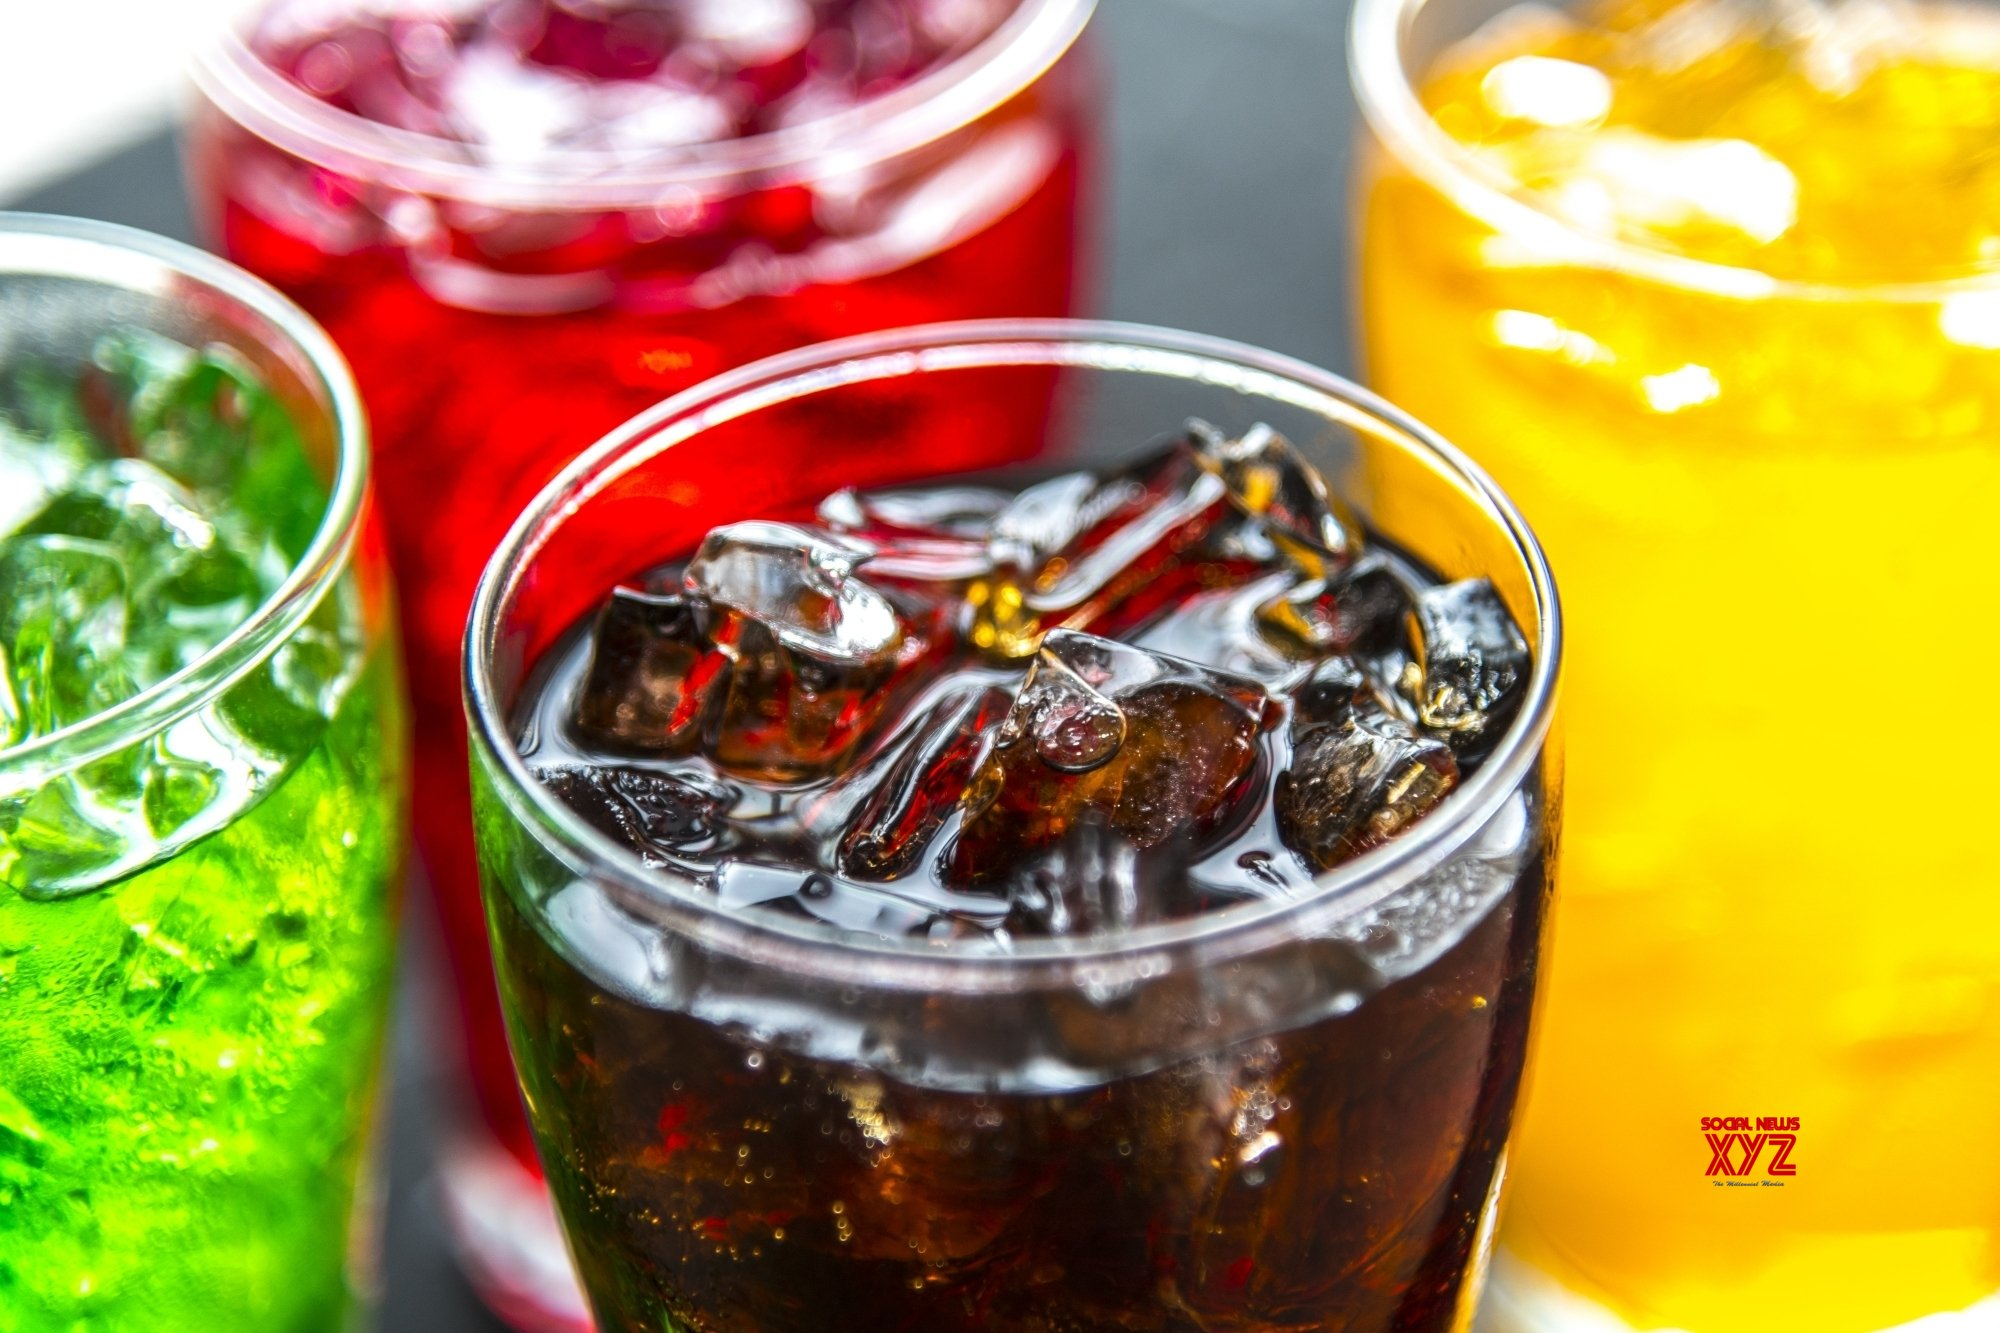 Soft drinks may increase risk of death, study says